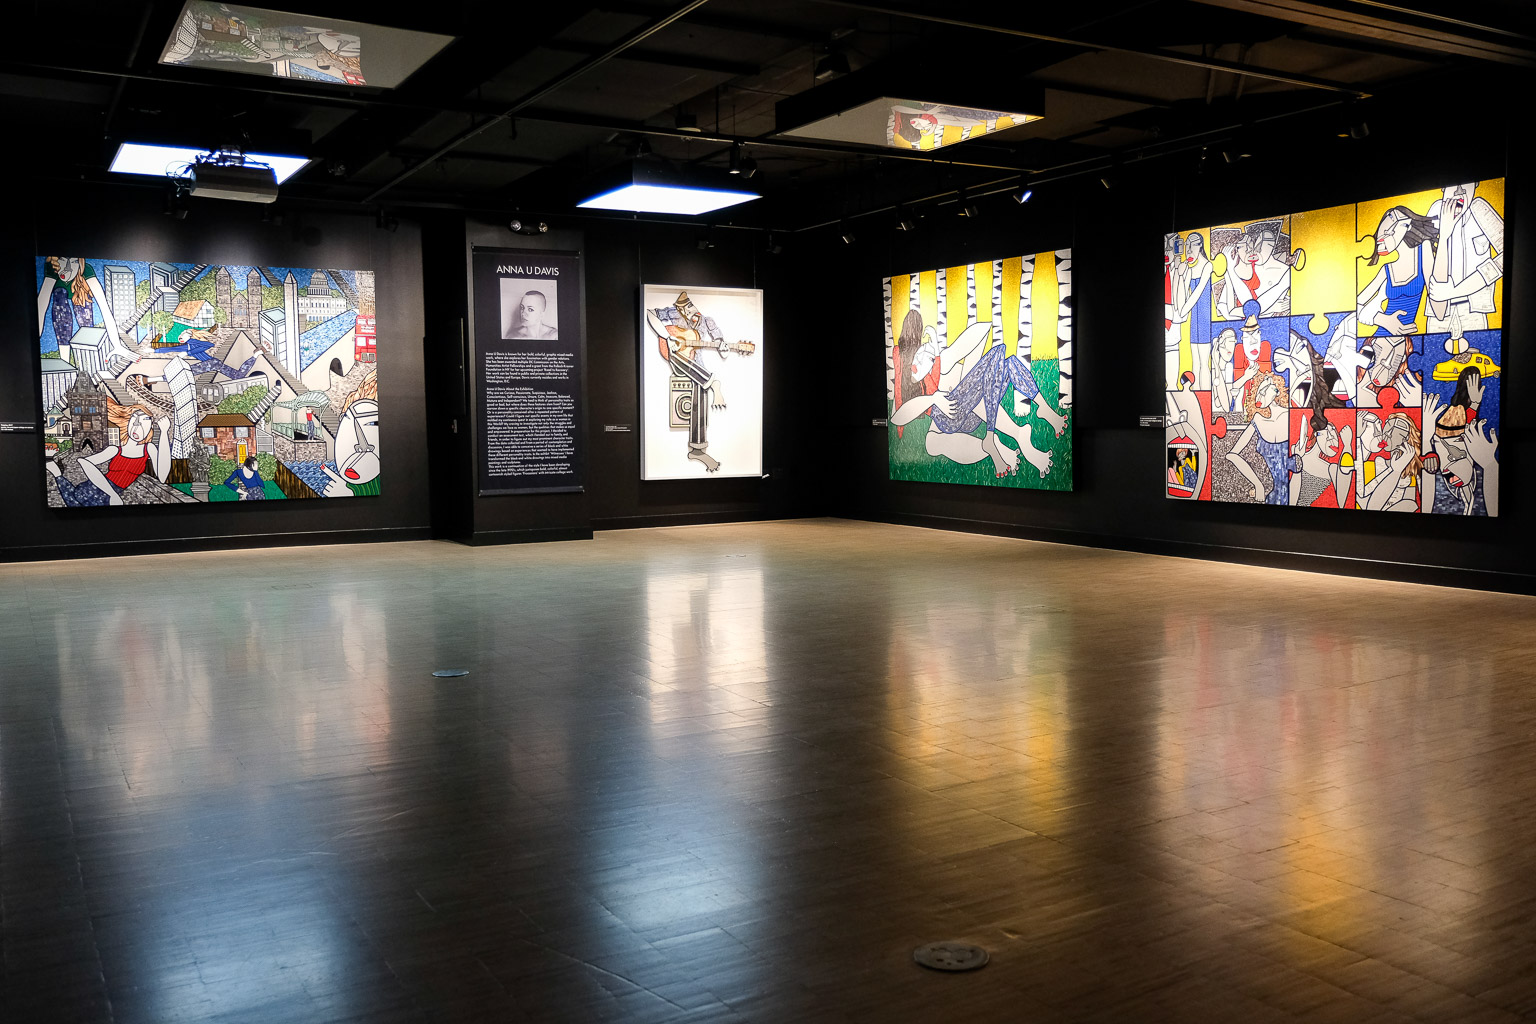 Click here to see the companion post  featuring the entire exhibit.